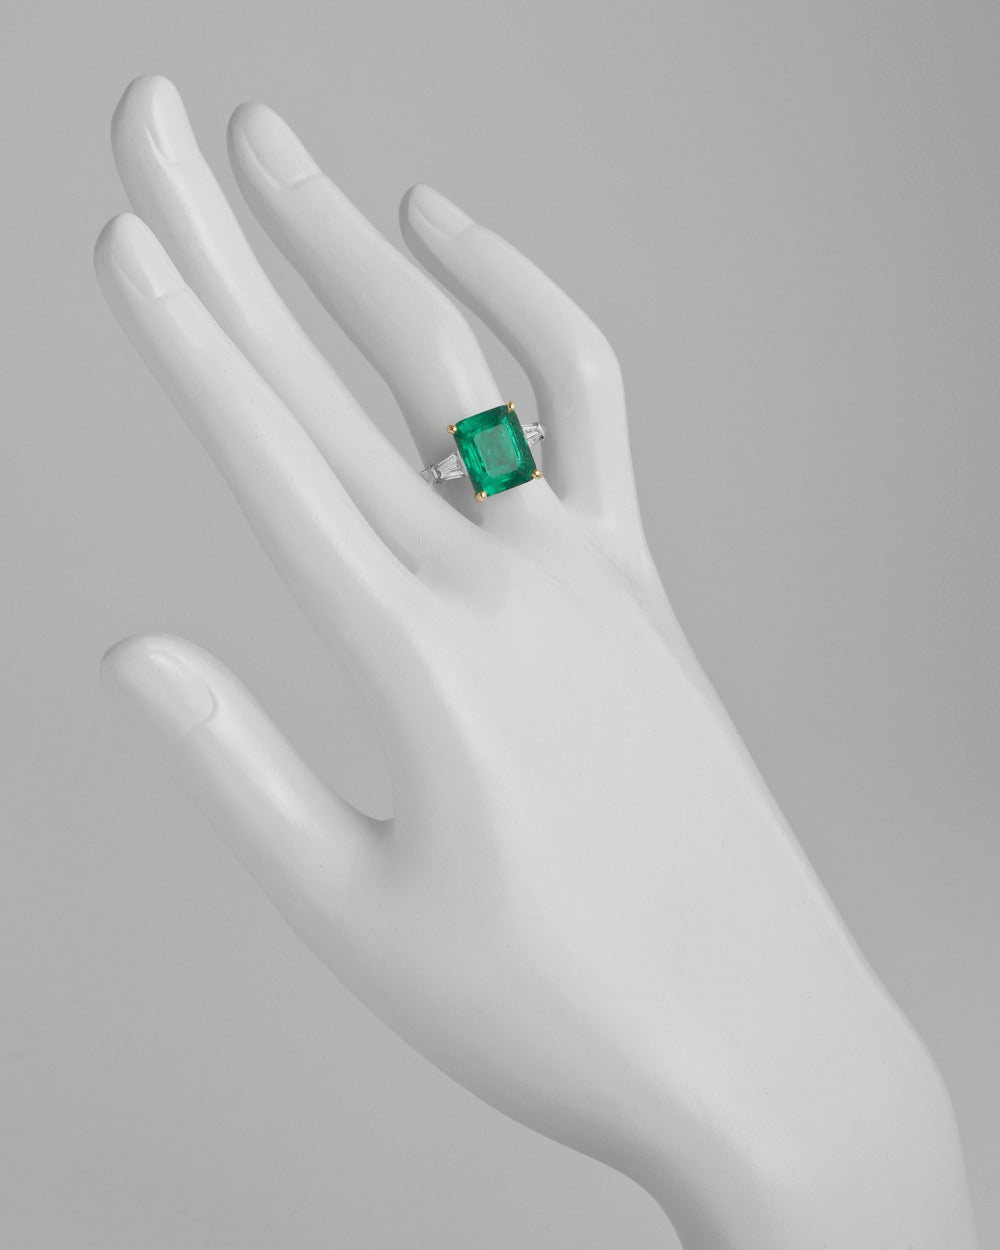 Cartier 499 Carat Colombian Emerald Diamond Ring 2